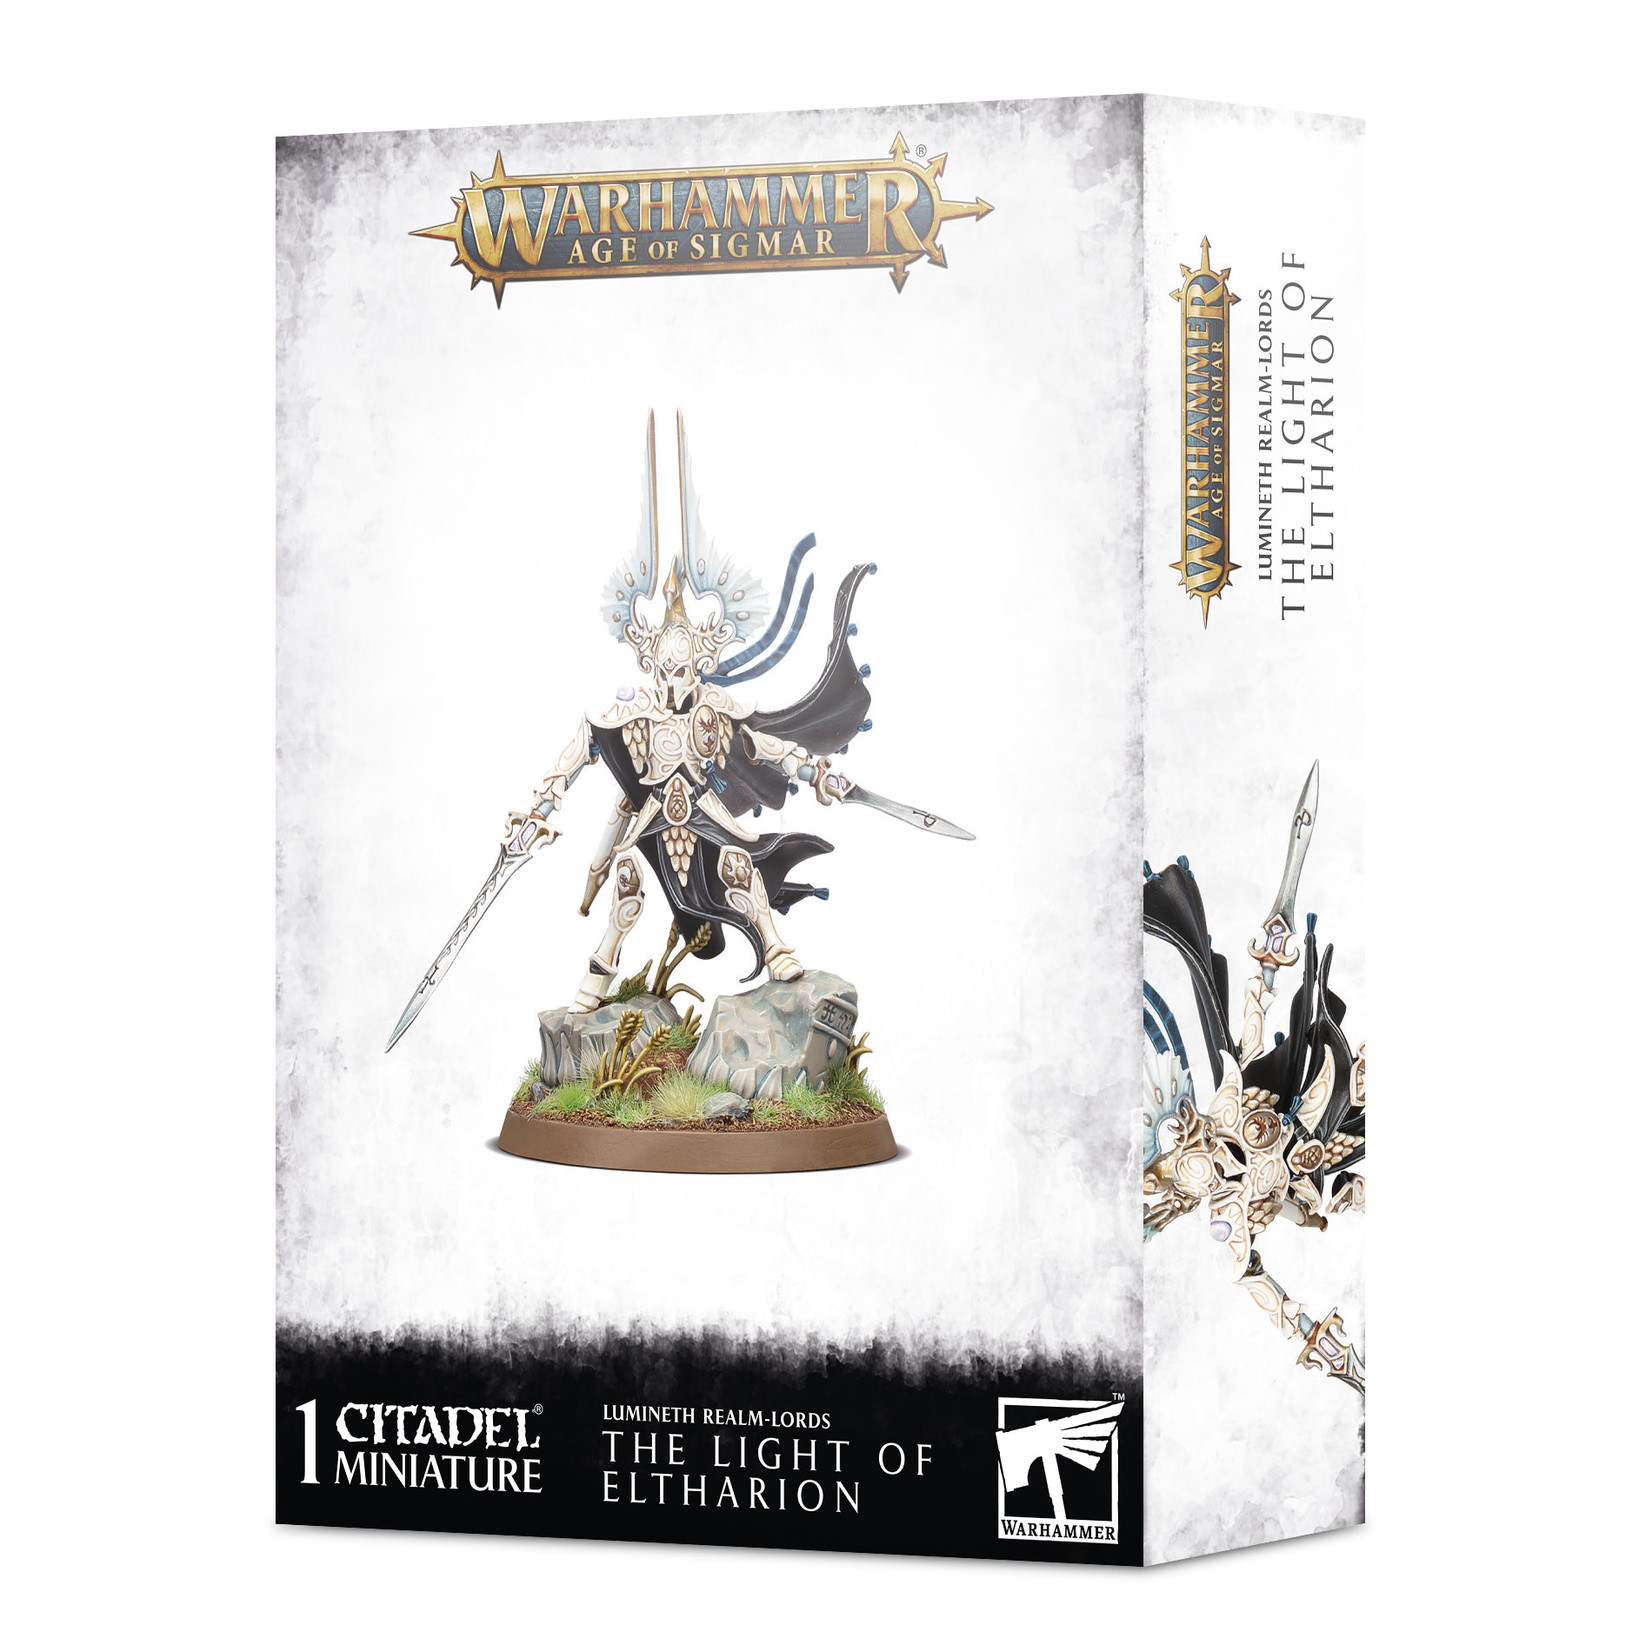 Games Workshop Warhammer Age of Sigmar: Lumineth Realm-Lords The Light of Eltharion